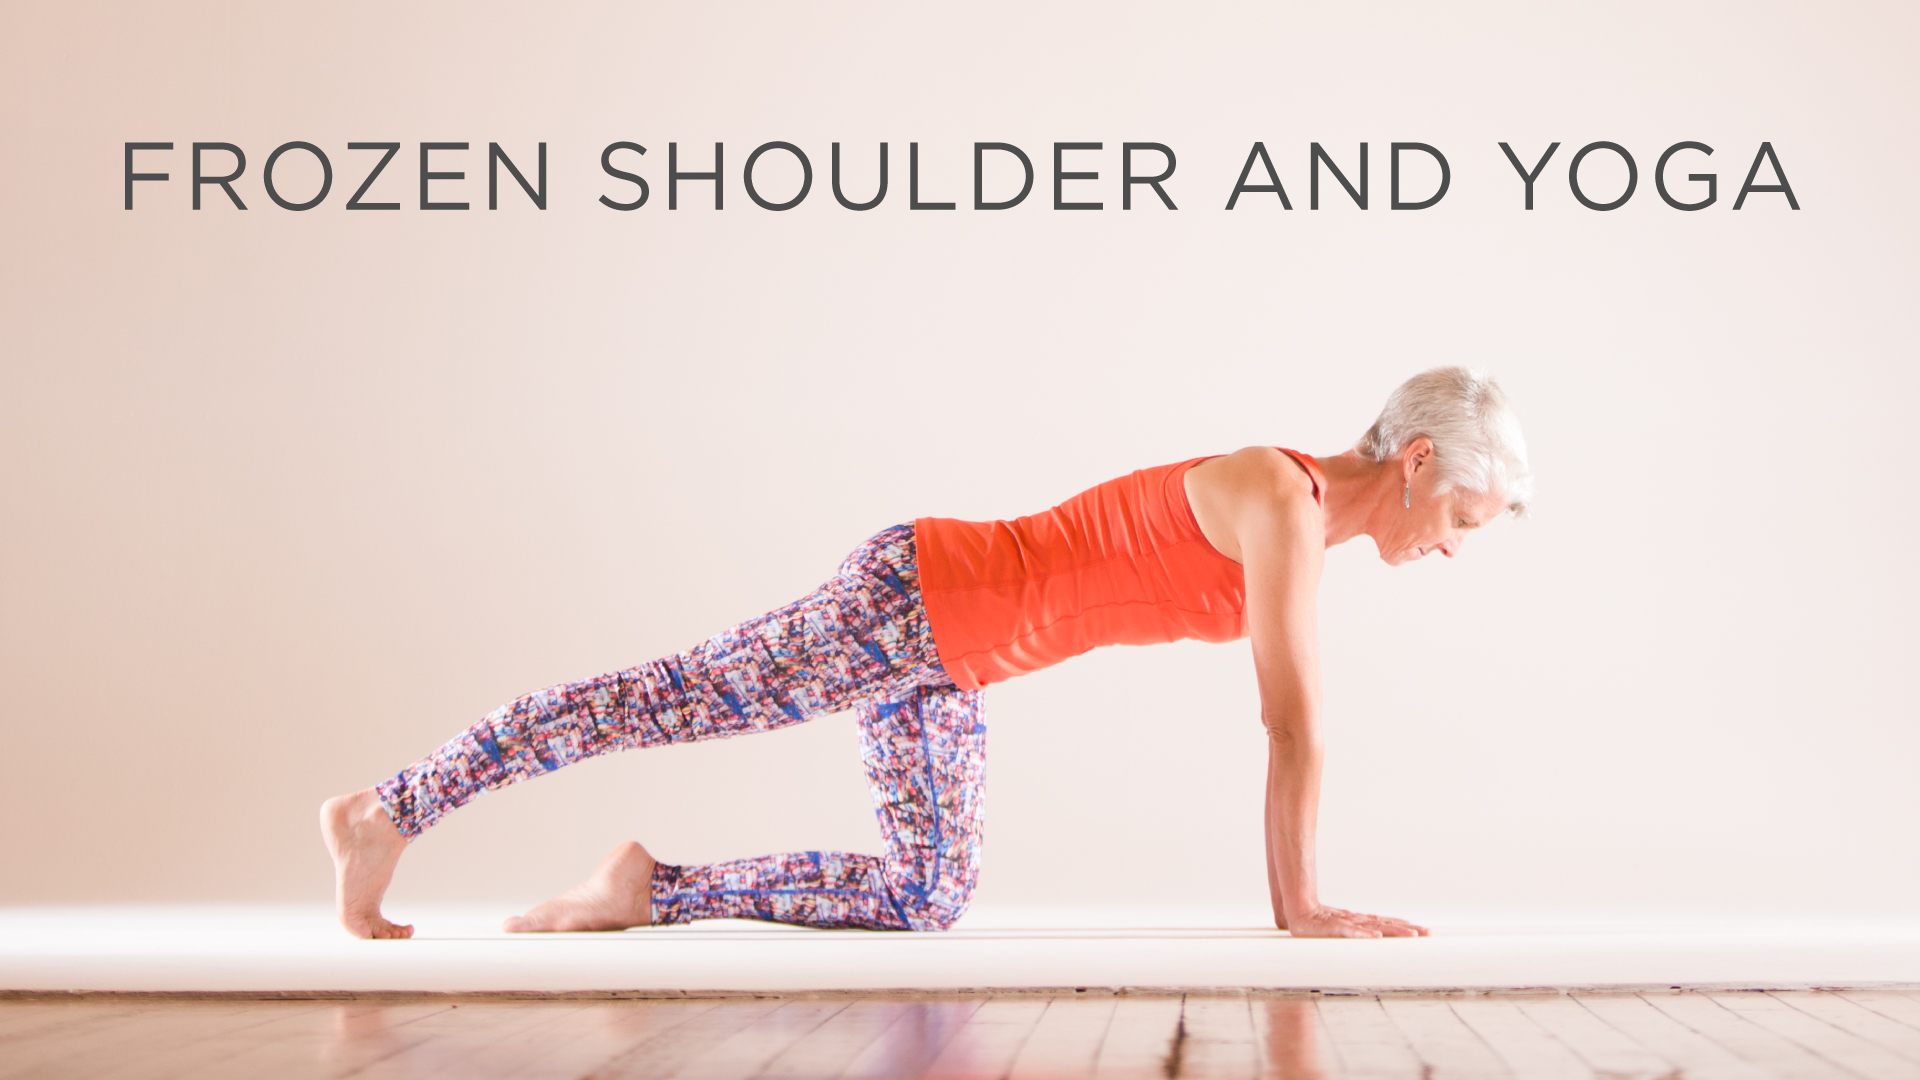 Frozen shoulder and physical therapy - Frozen Shoulder And Physical Therapy 52